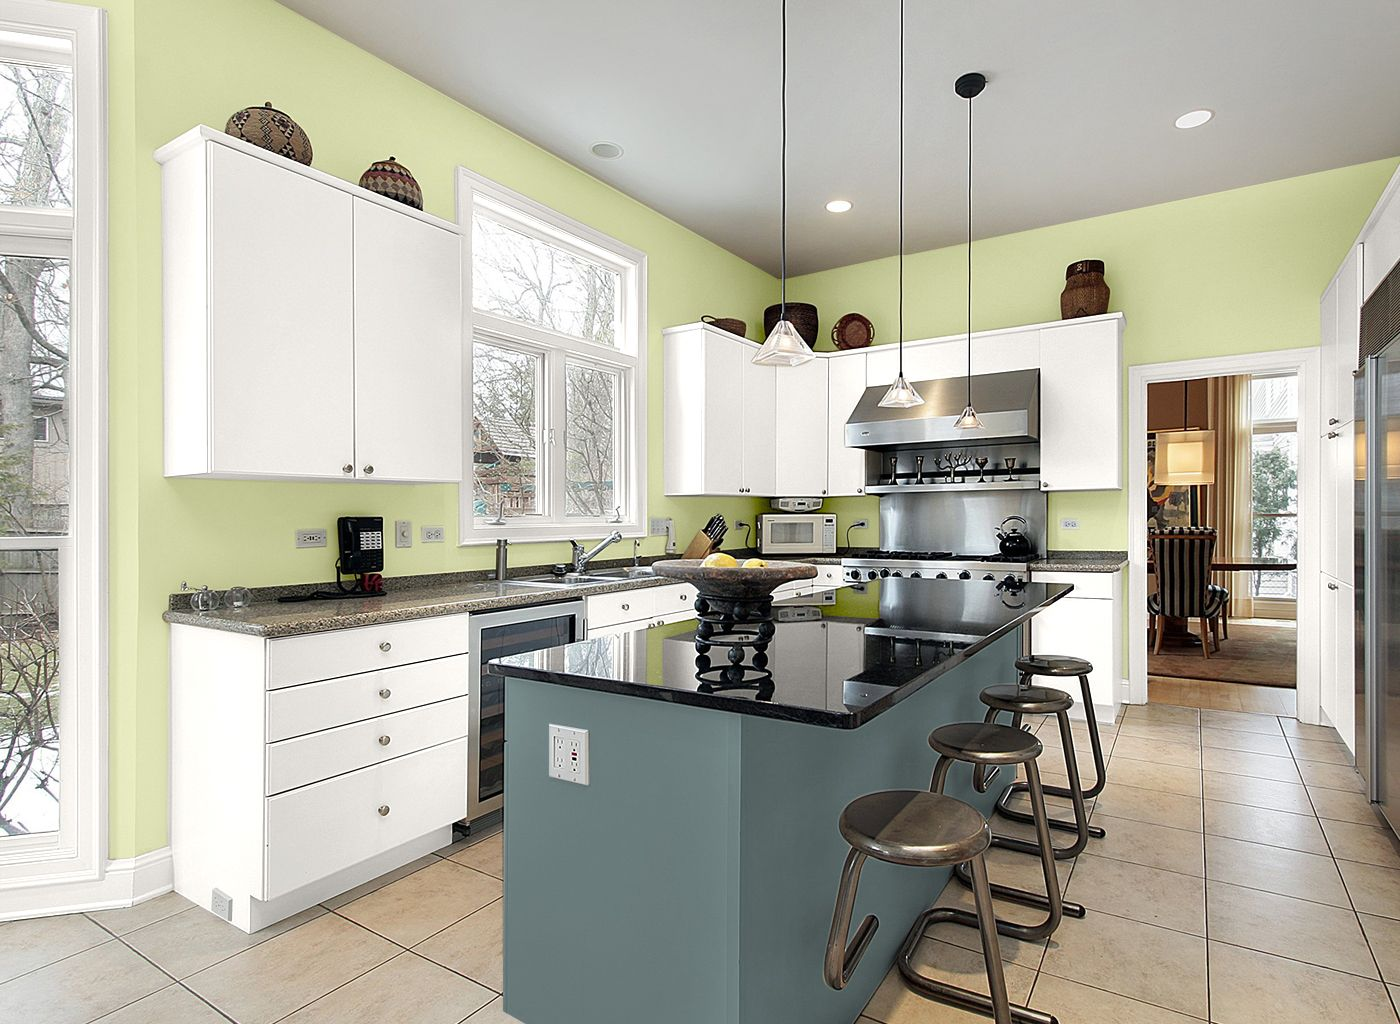 Kitchen in Spring Cactus | Kitchen by Julianne Tamasy | Pinterest ...